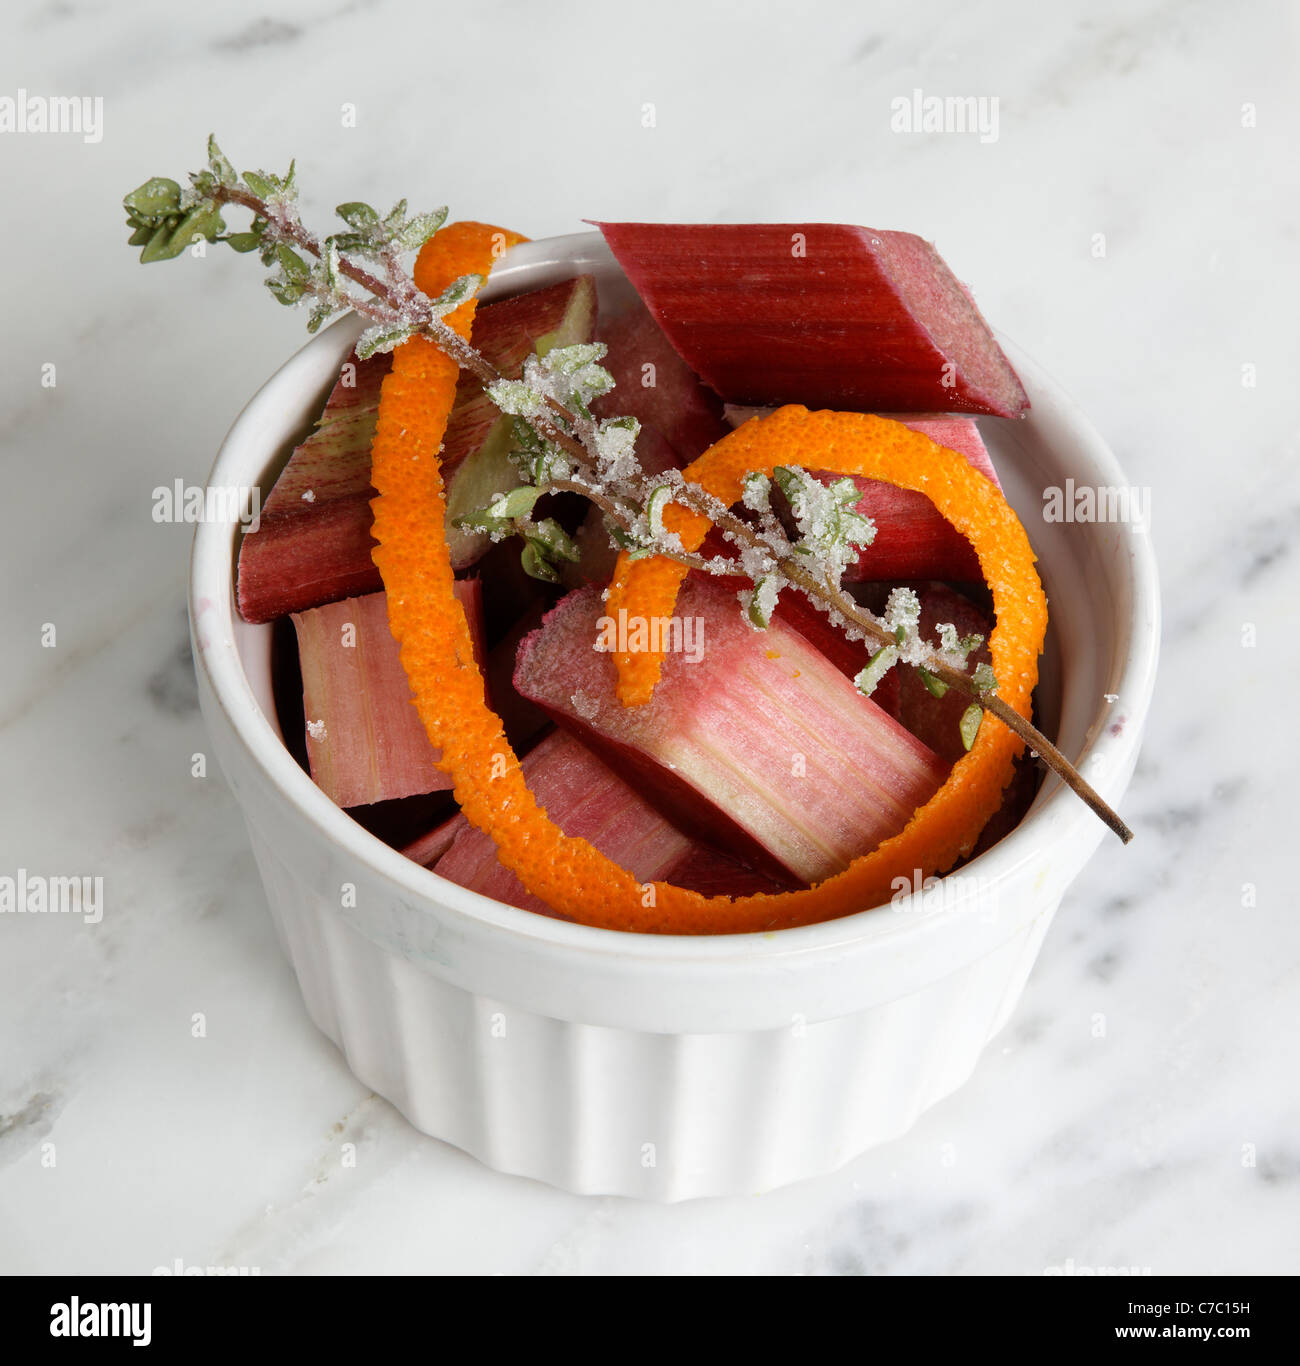 Chopped rhubarb in bowl garnished with orange peel and lavender sprig, by pastry chef Laurie Pfalzer, Pastry Craft - Stock Image